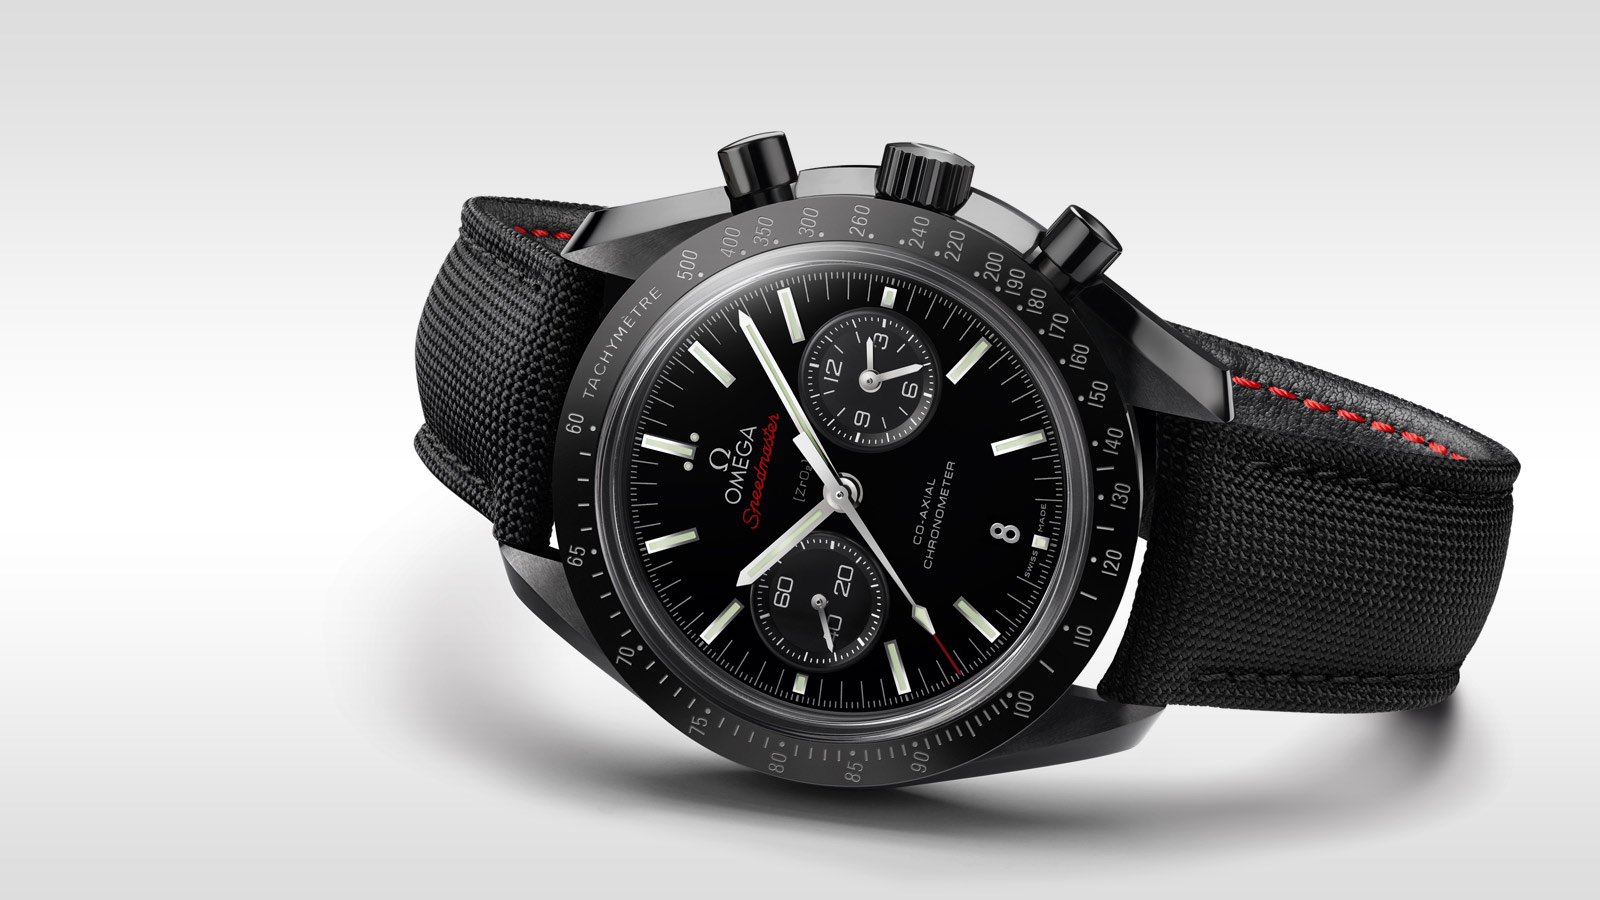 Speedmaster Moonwatch Moonwatch Omega Co‑Axial Chronograph 44.25 mm - 311.92.44.51.01.003 - View 5